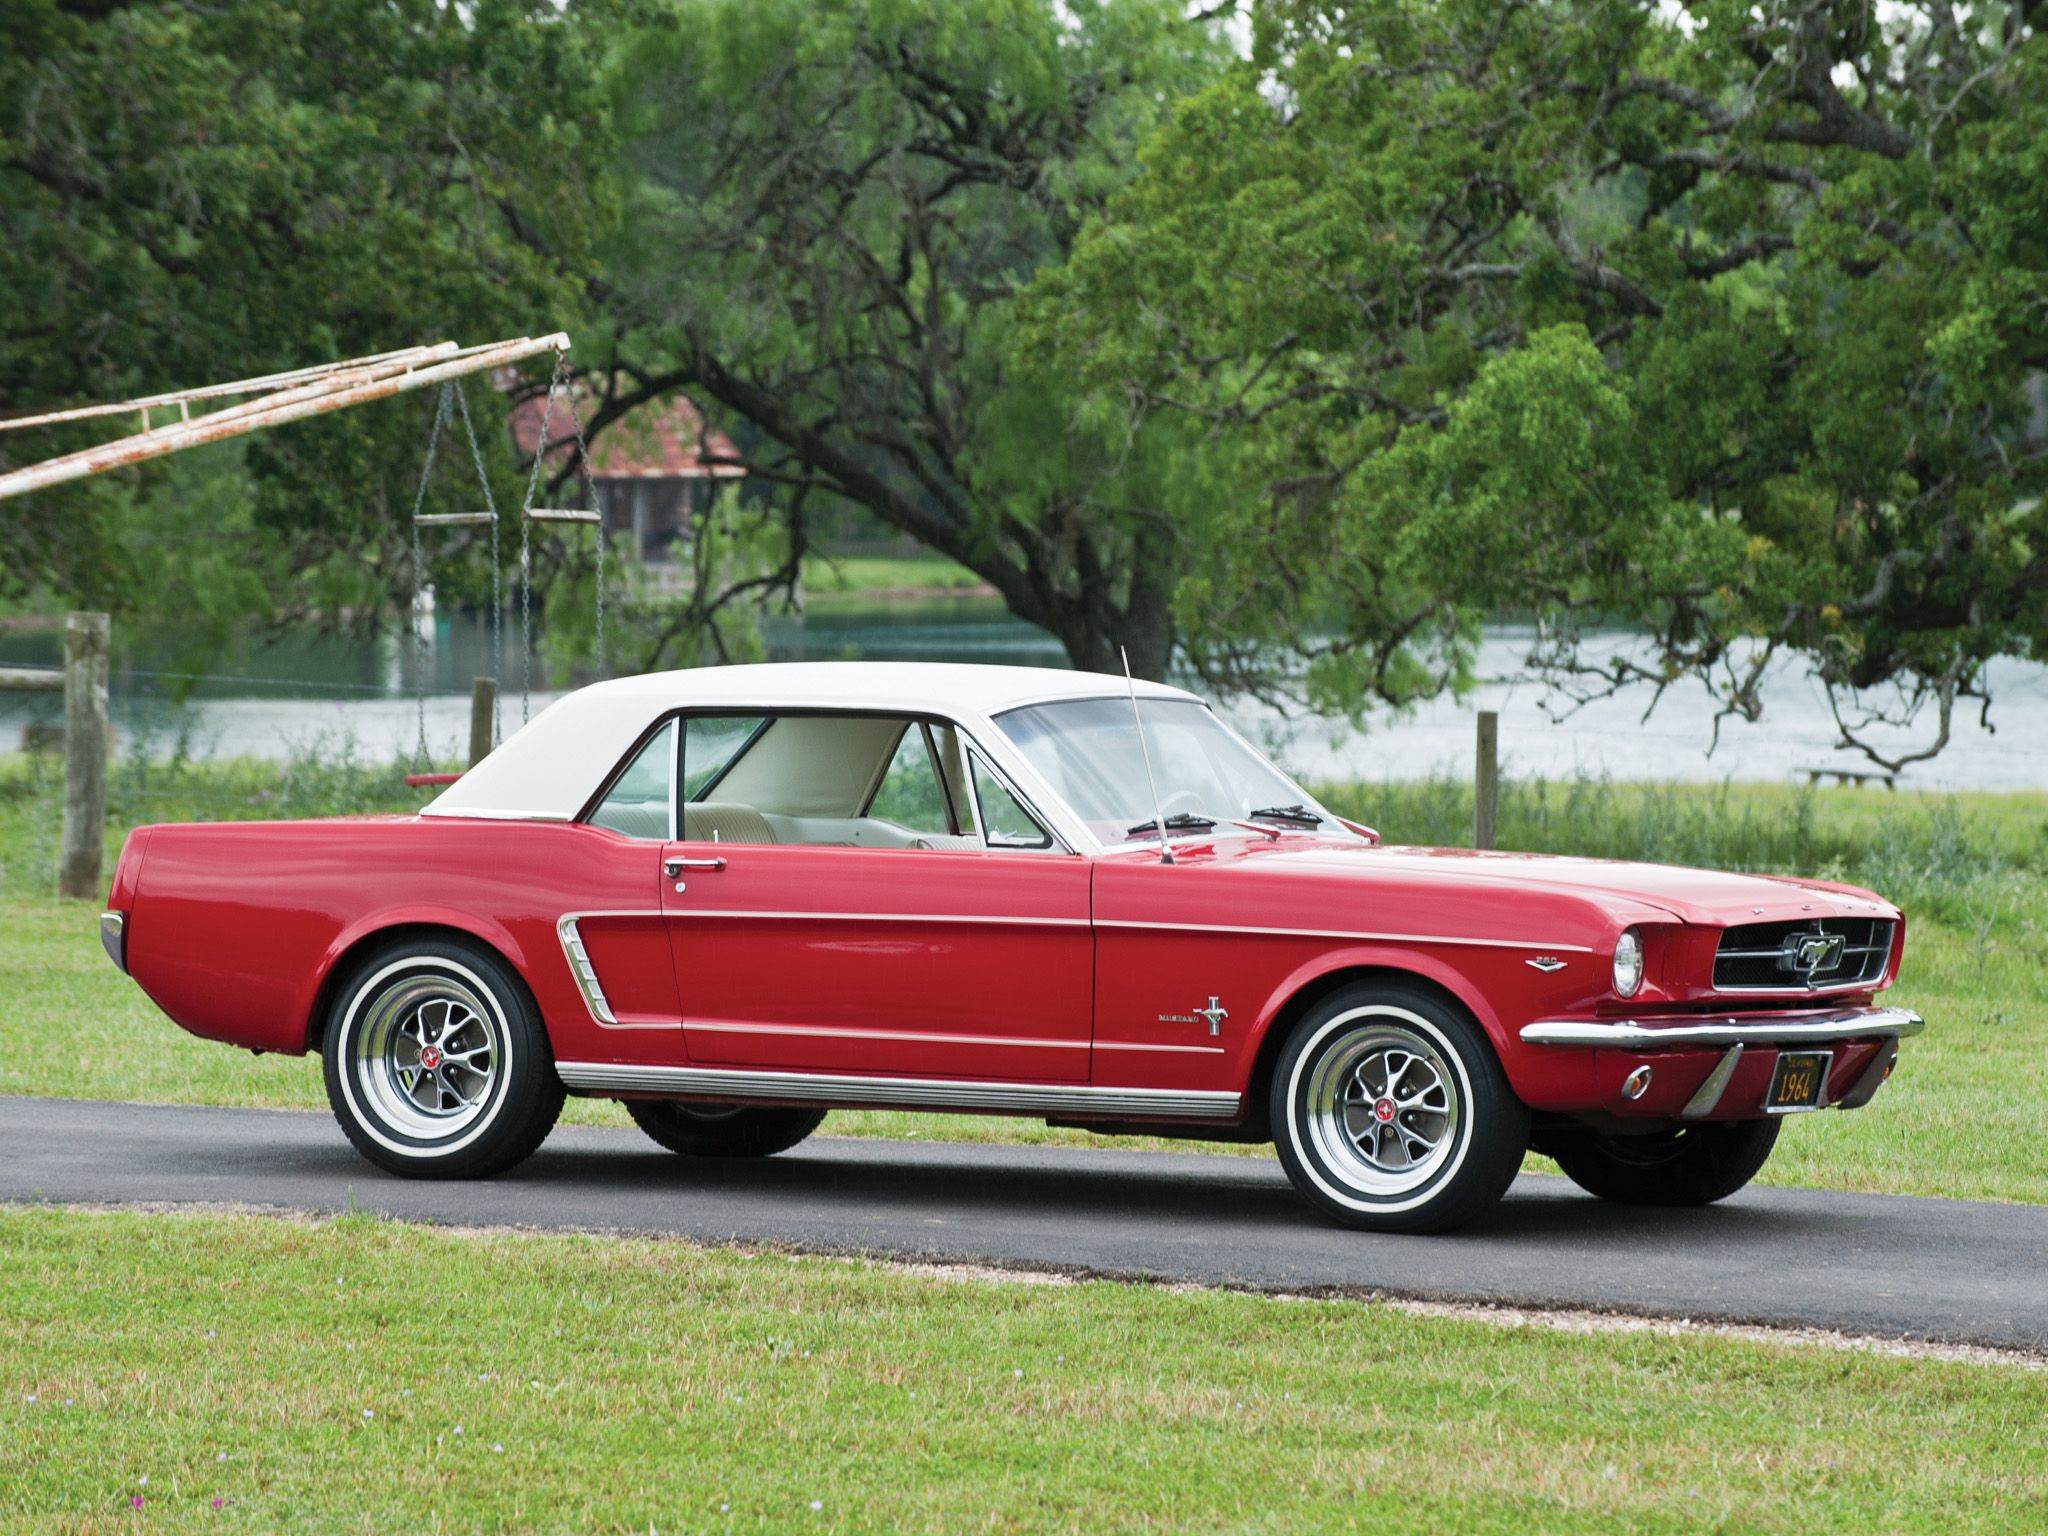 1964 Ford Mustang 260 Ready for a road trip in the states ...